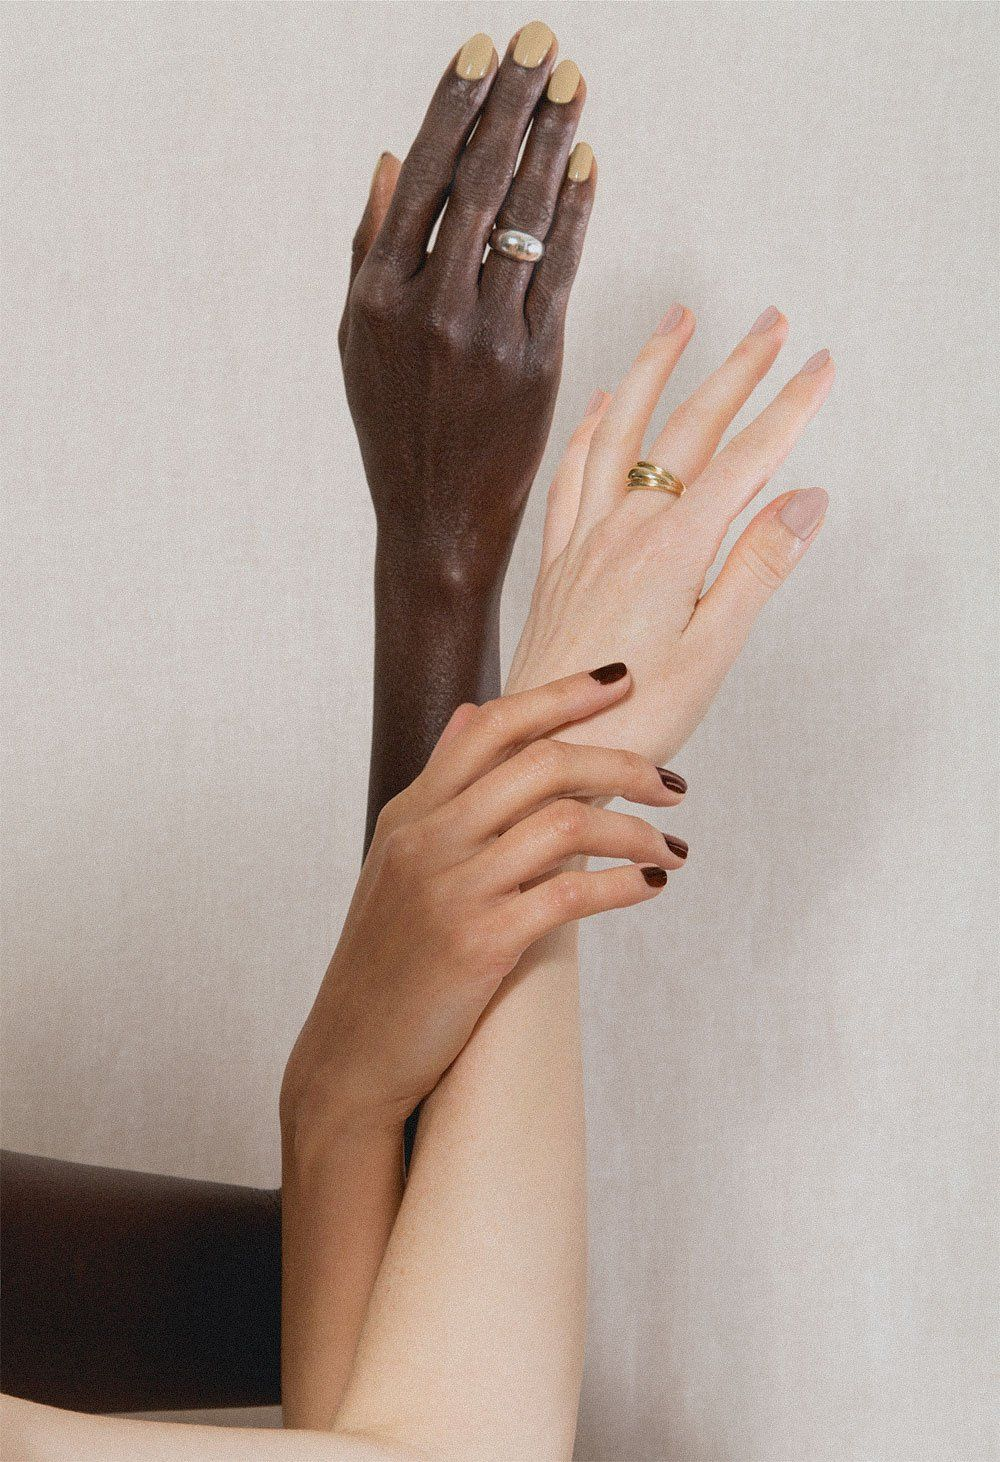 Pin By J Hannah On Products In 2021 Brown Aesthetic Skin Aesthetic [ 1462 x 1000 Pixel ]